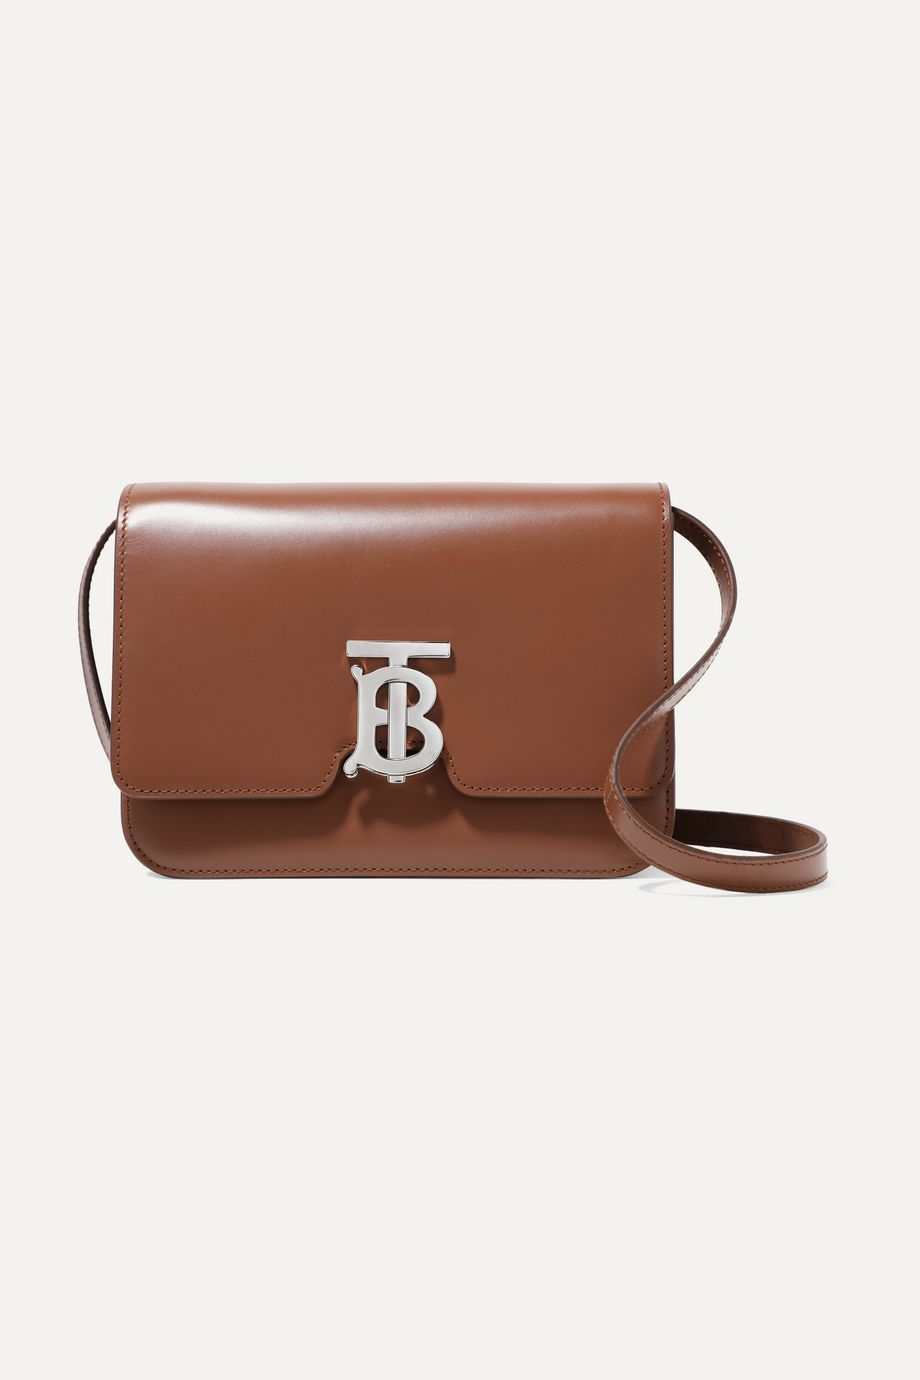 Burberry Small leather shoulder bag